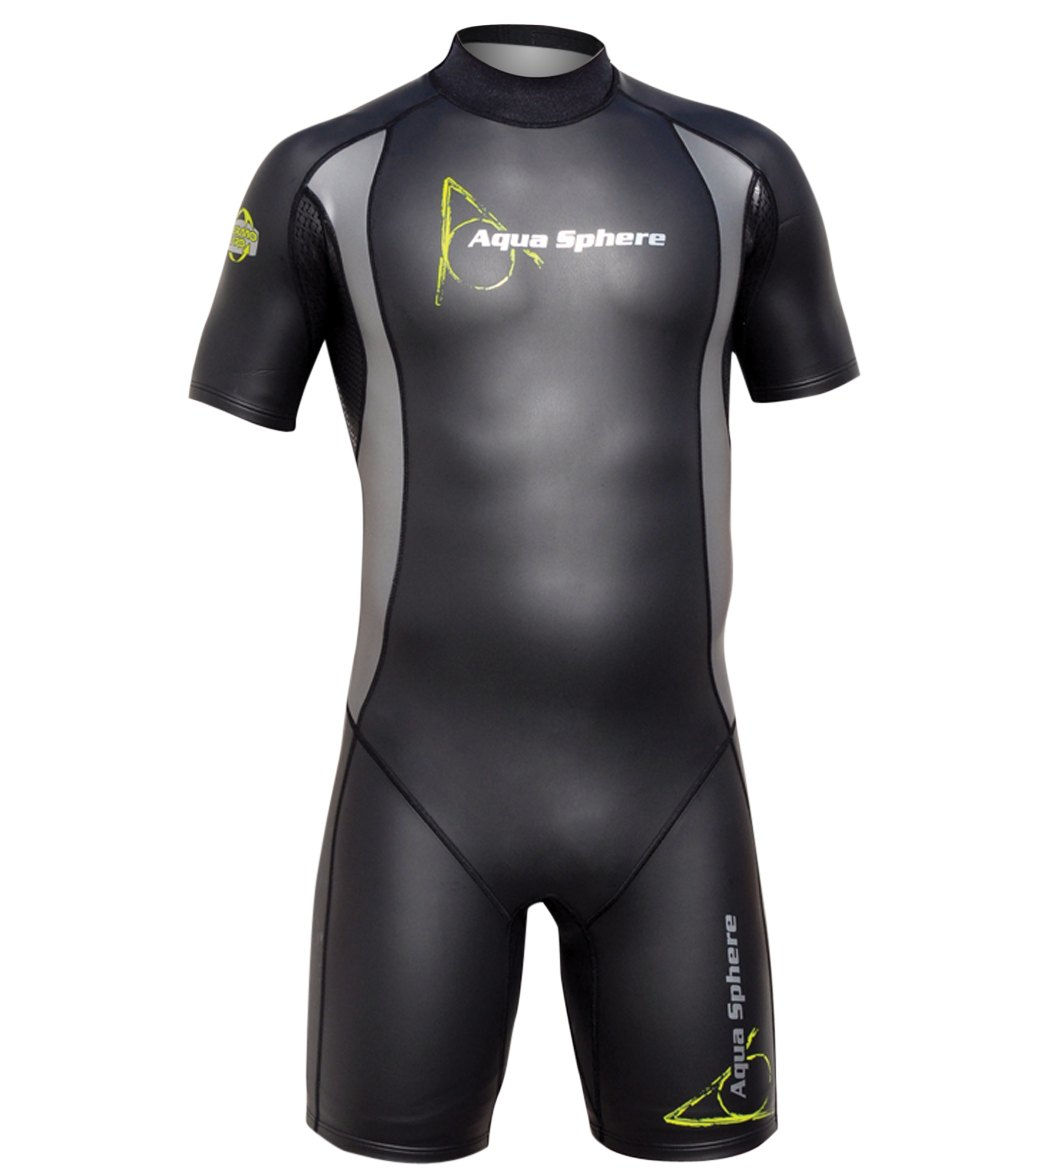 0d2c9905d5c52a Aqua Sphere Men s WT80 Shorty Wetsuit at SwimOutlet.com - Free Shipping